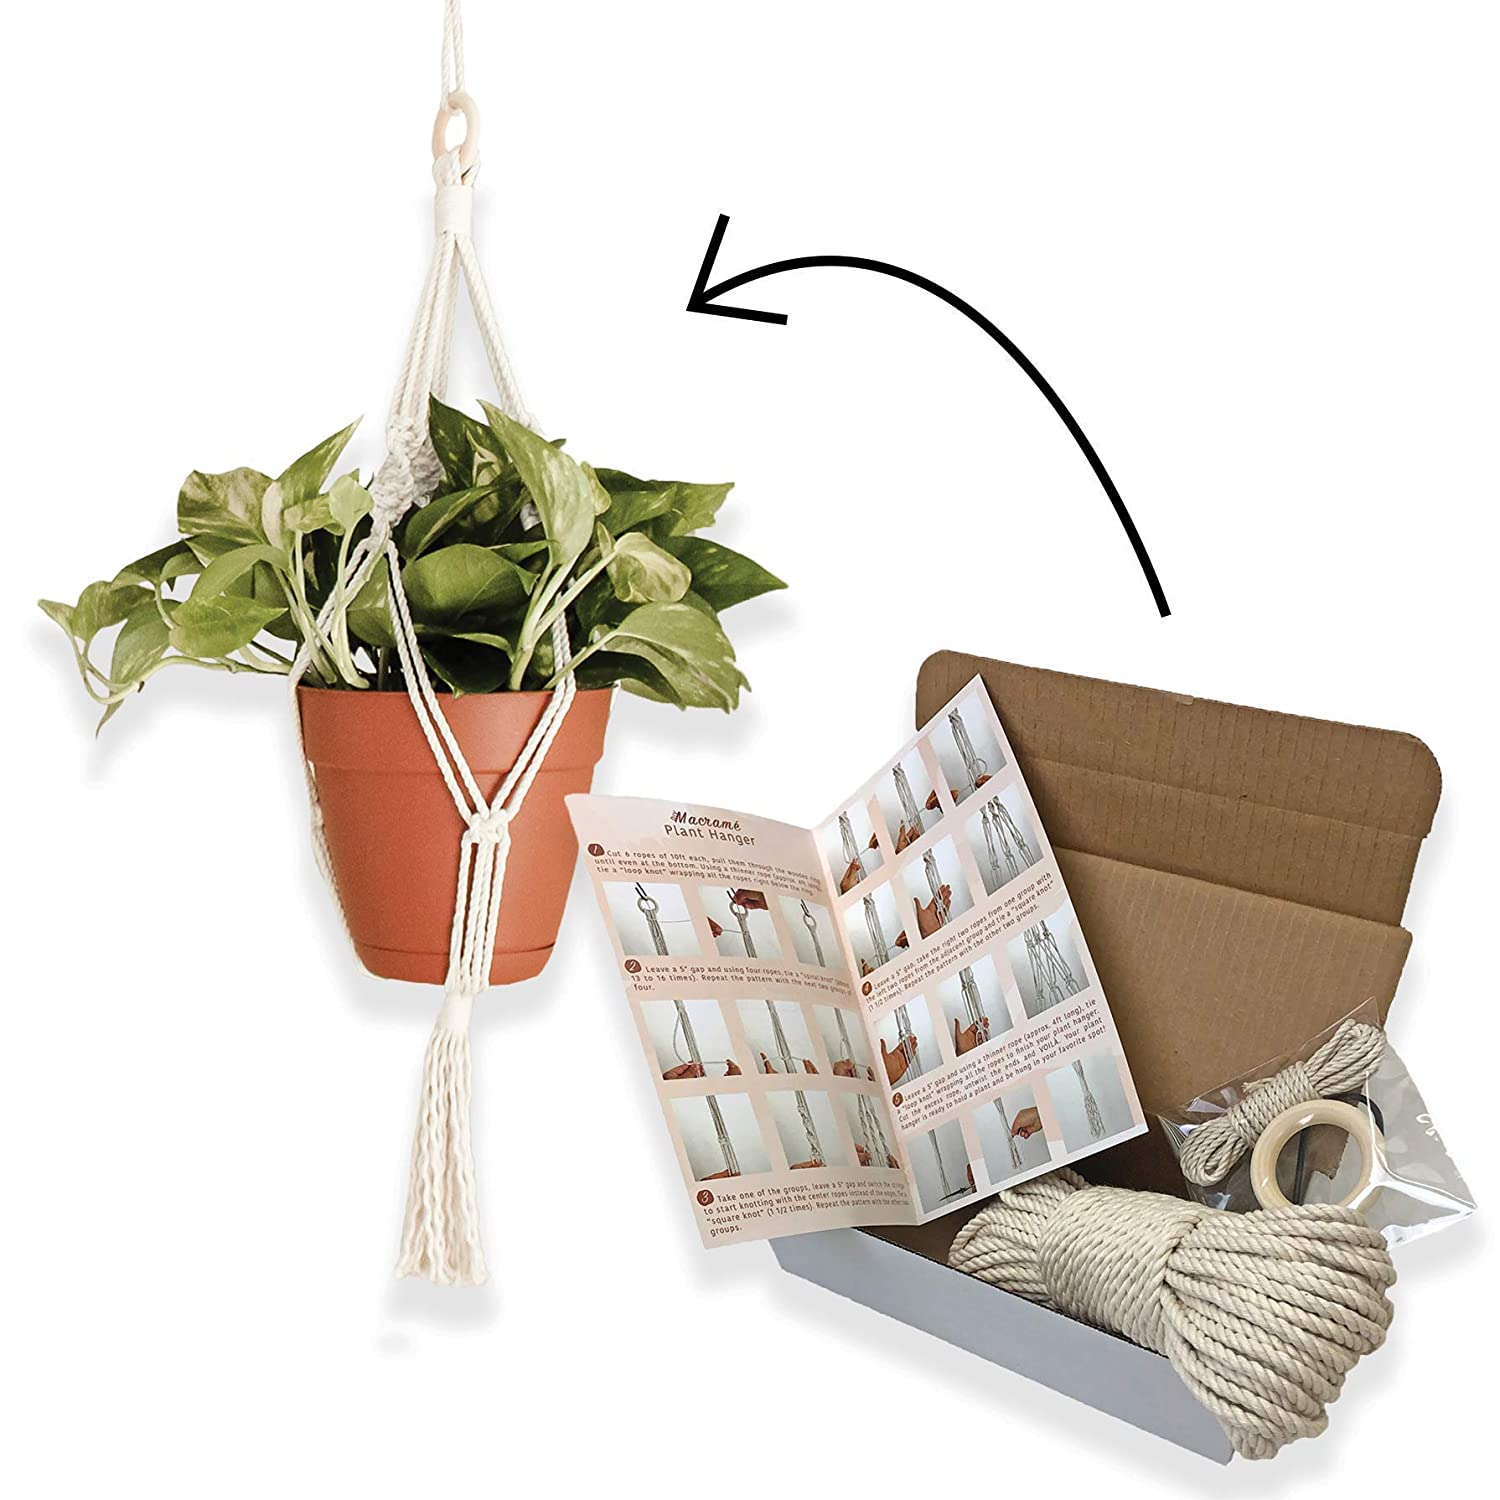 Amazon Com Sitos Plant Hanger Materials Kit Diy Pot Holder Craft Kits Macrame Hanging Planter Handmade Plant Stand Home Activities For The Entire Family Handmade